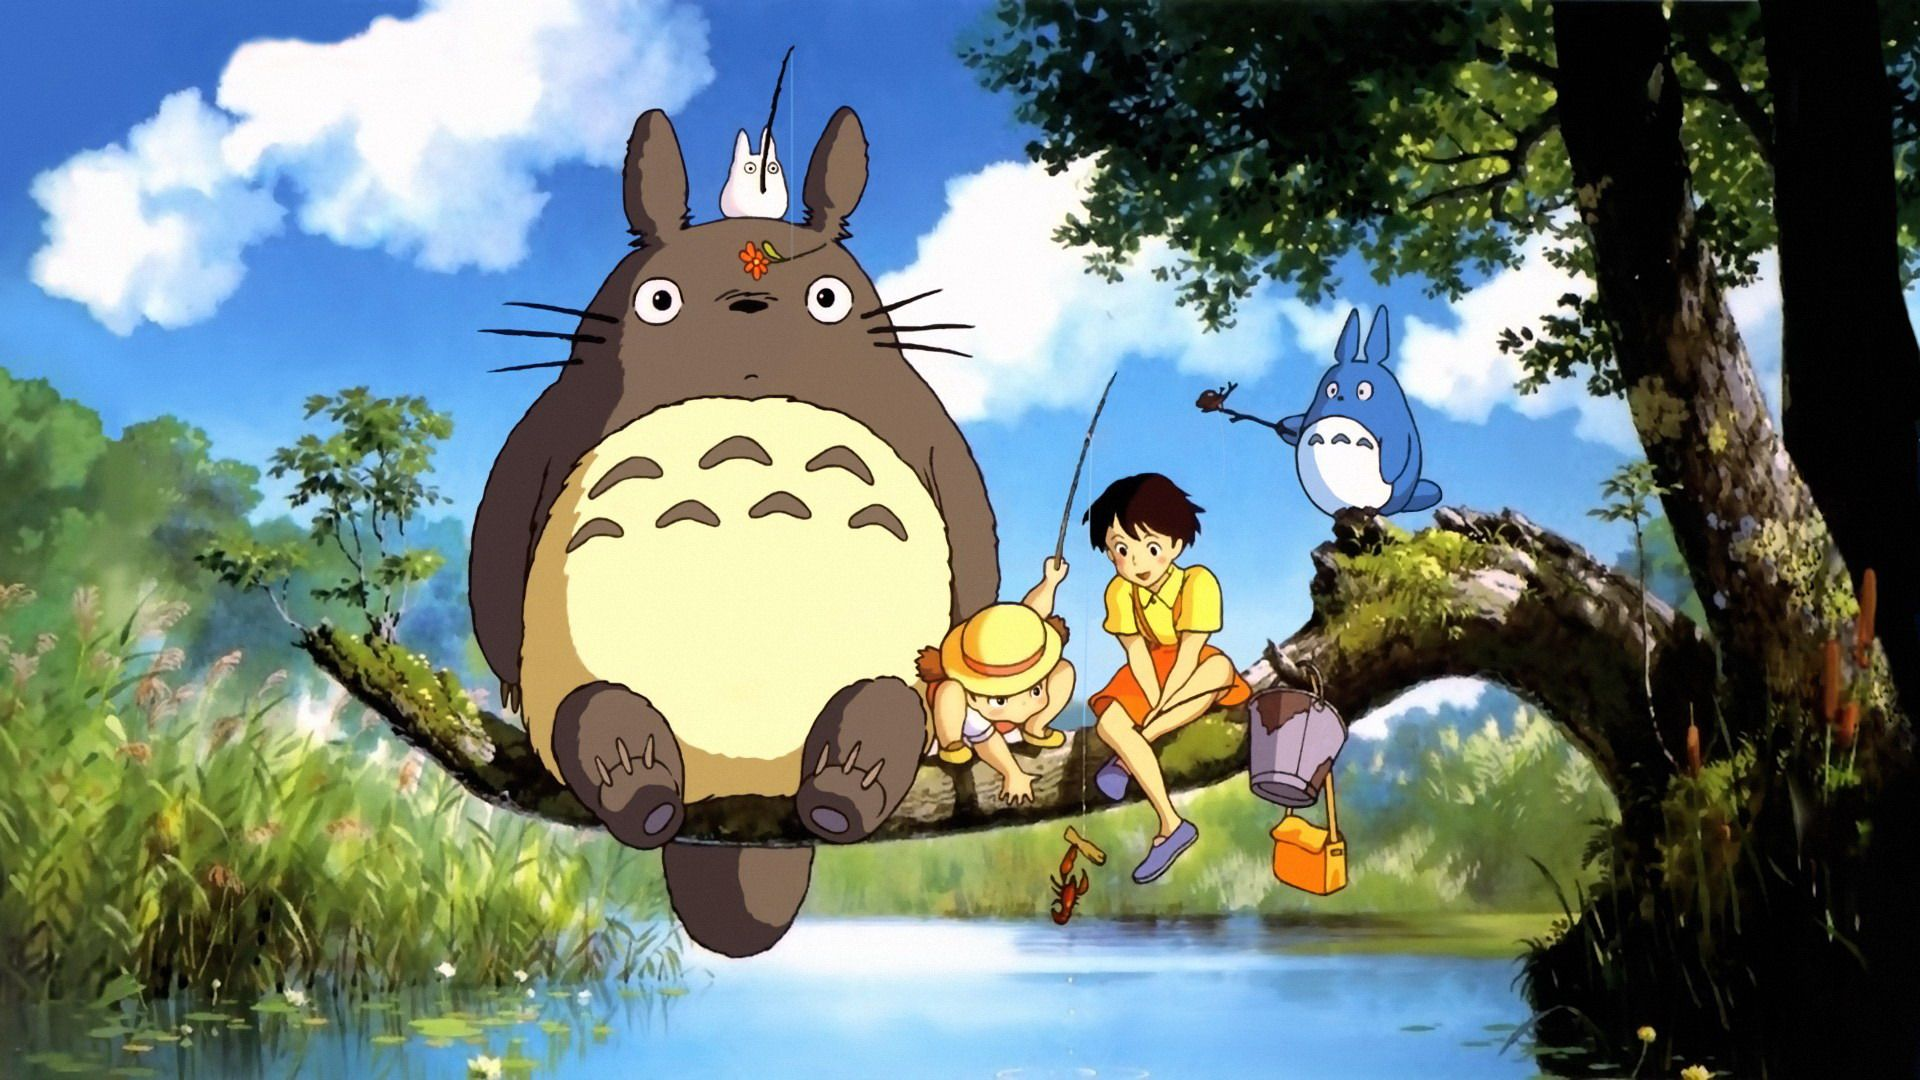 Studio Ghibli To Open Theme Park In 2020